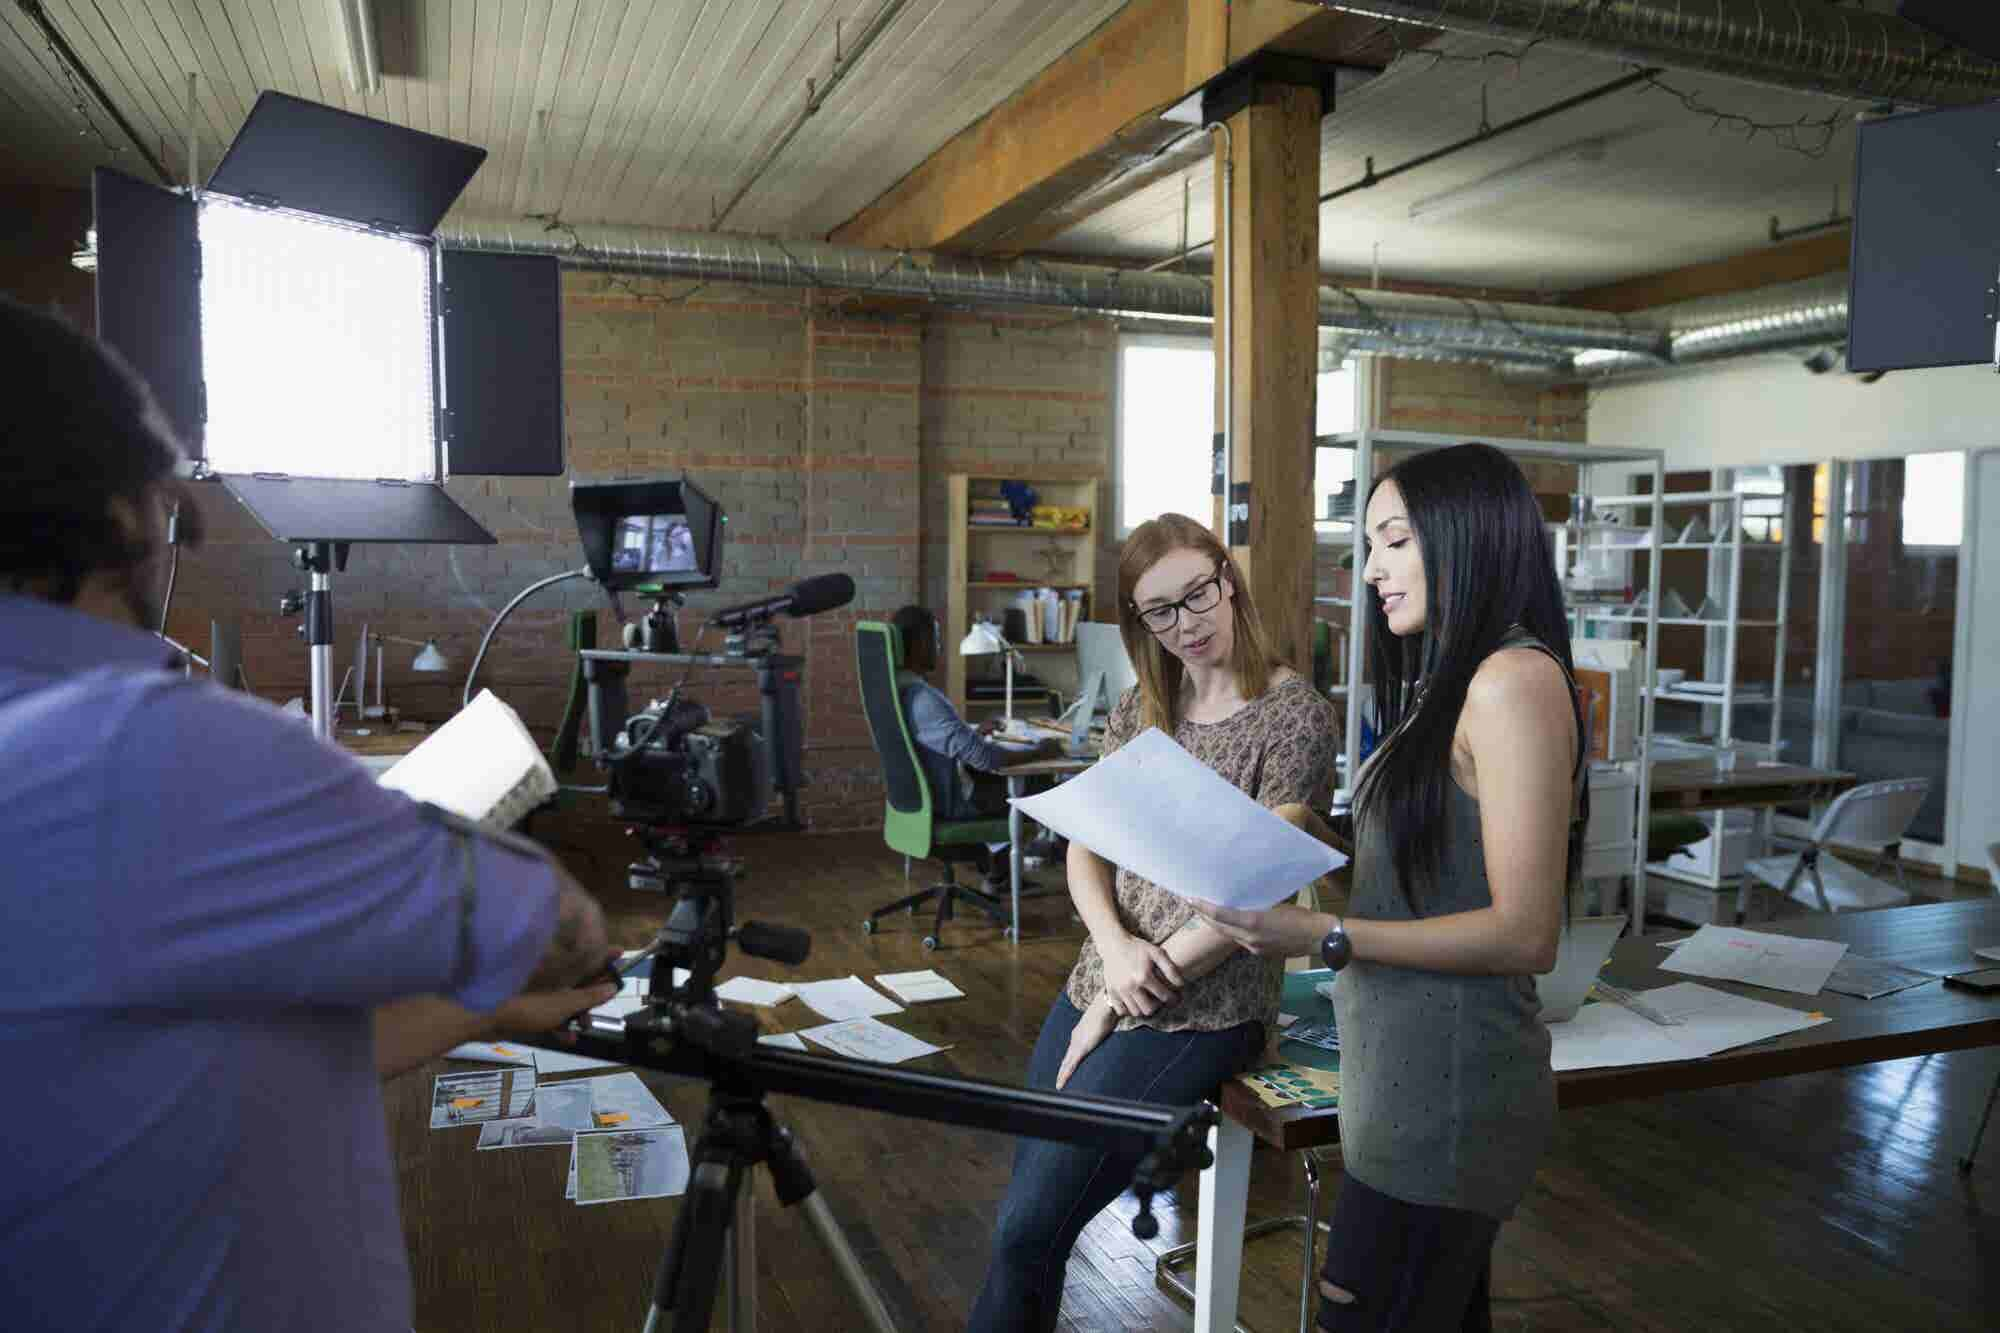 An Insider's Guide to Keeping Your Video Budget in the Black